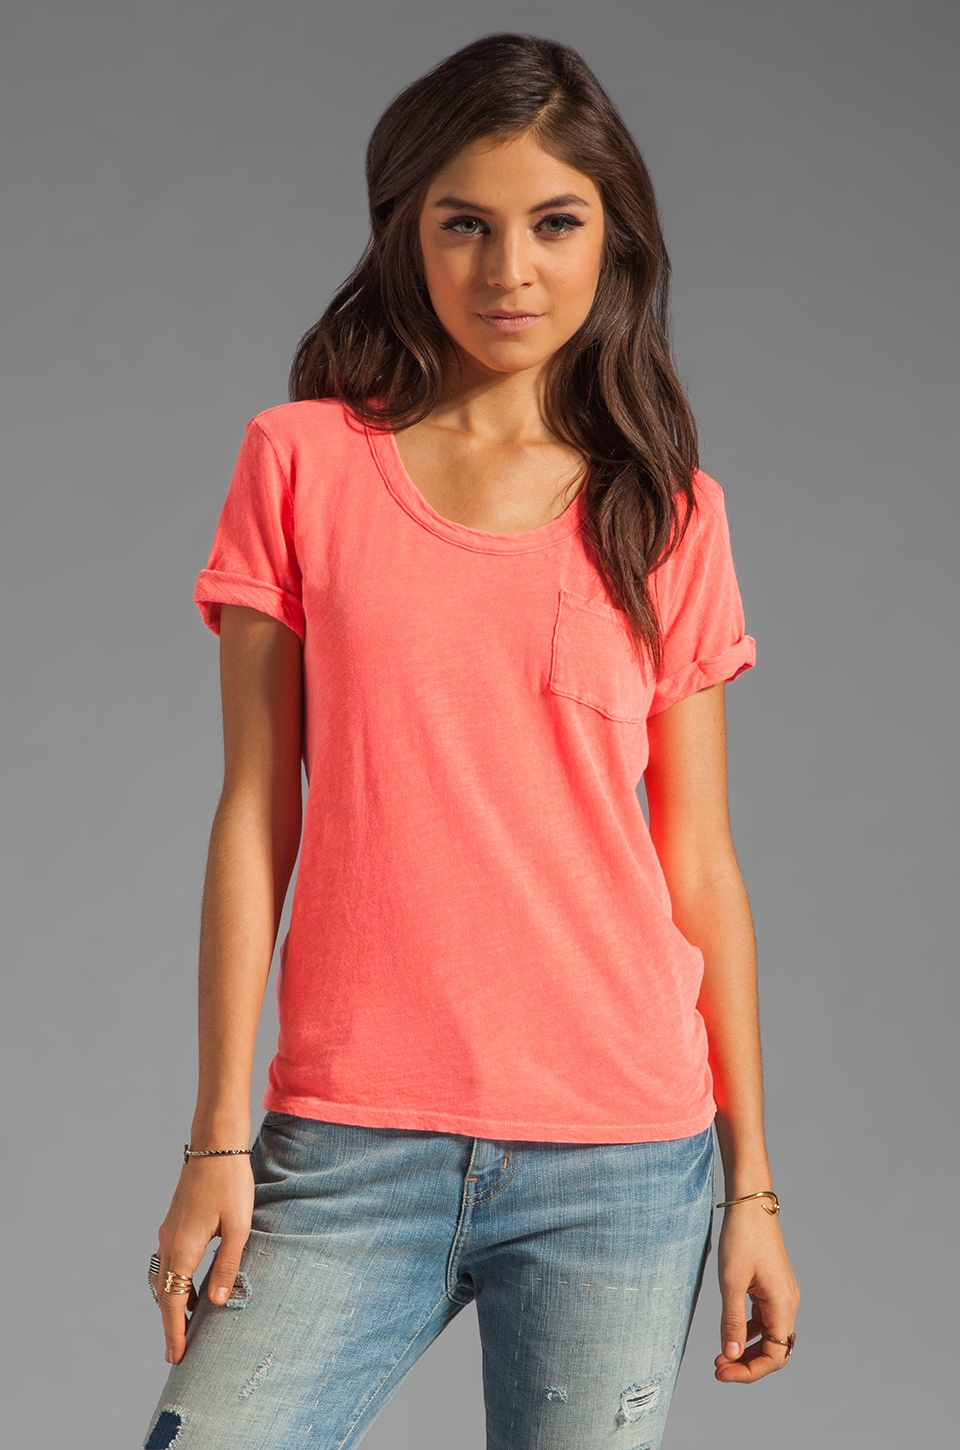 Bobi Cotton Slub Pocket Tee in Neon Coral